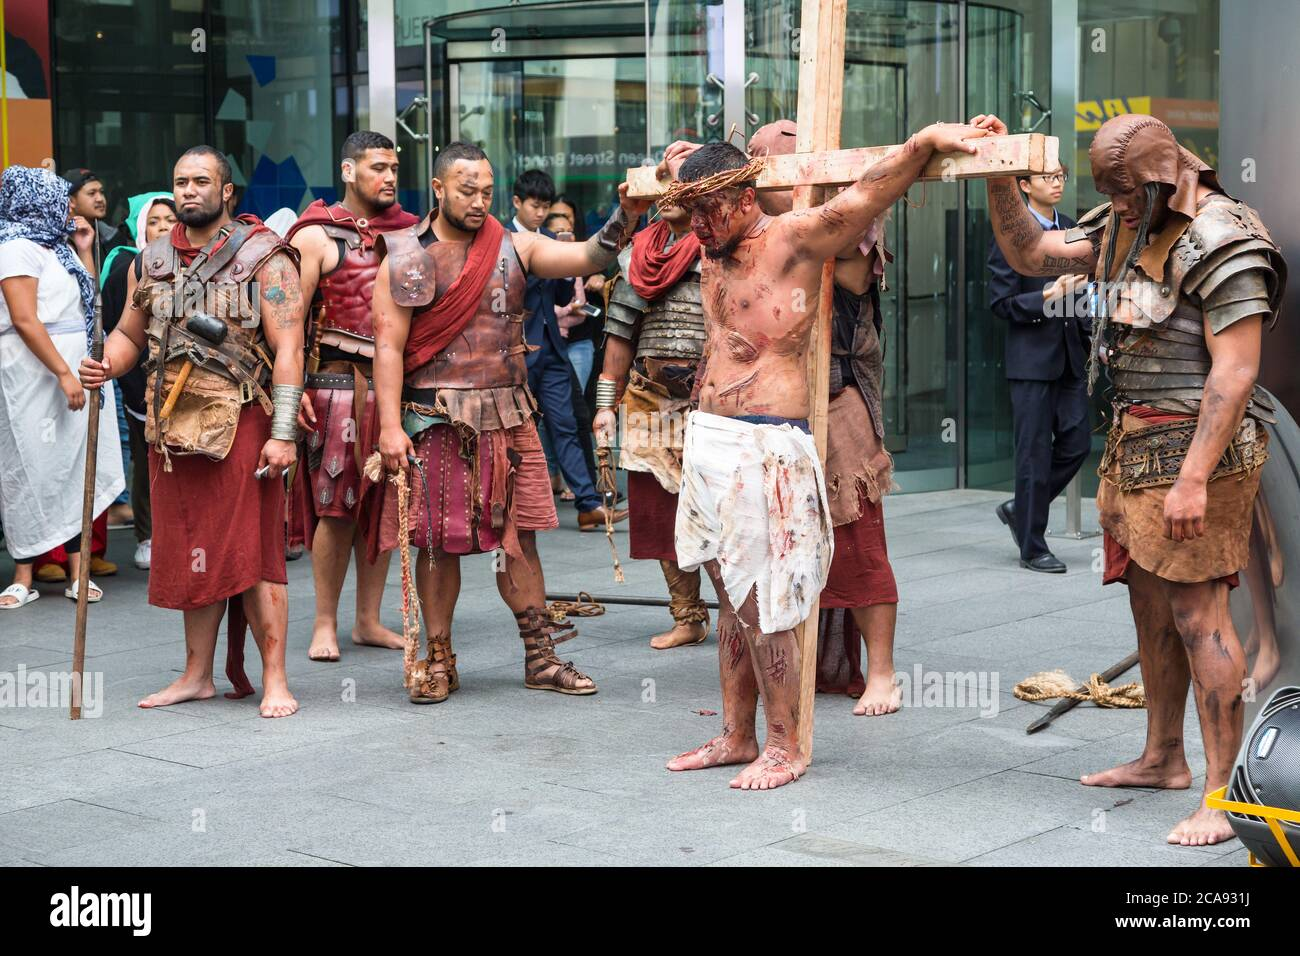 A reenactment of the crucifixion carried out by members of a Polynesian church dressed as Jesus and Roman soldiers. Auckland, New Zealand, 3/31/2018 Stock Photo